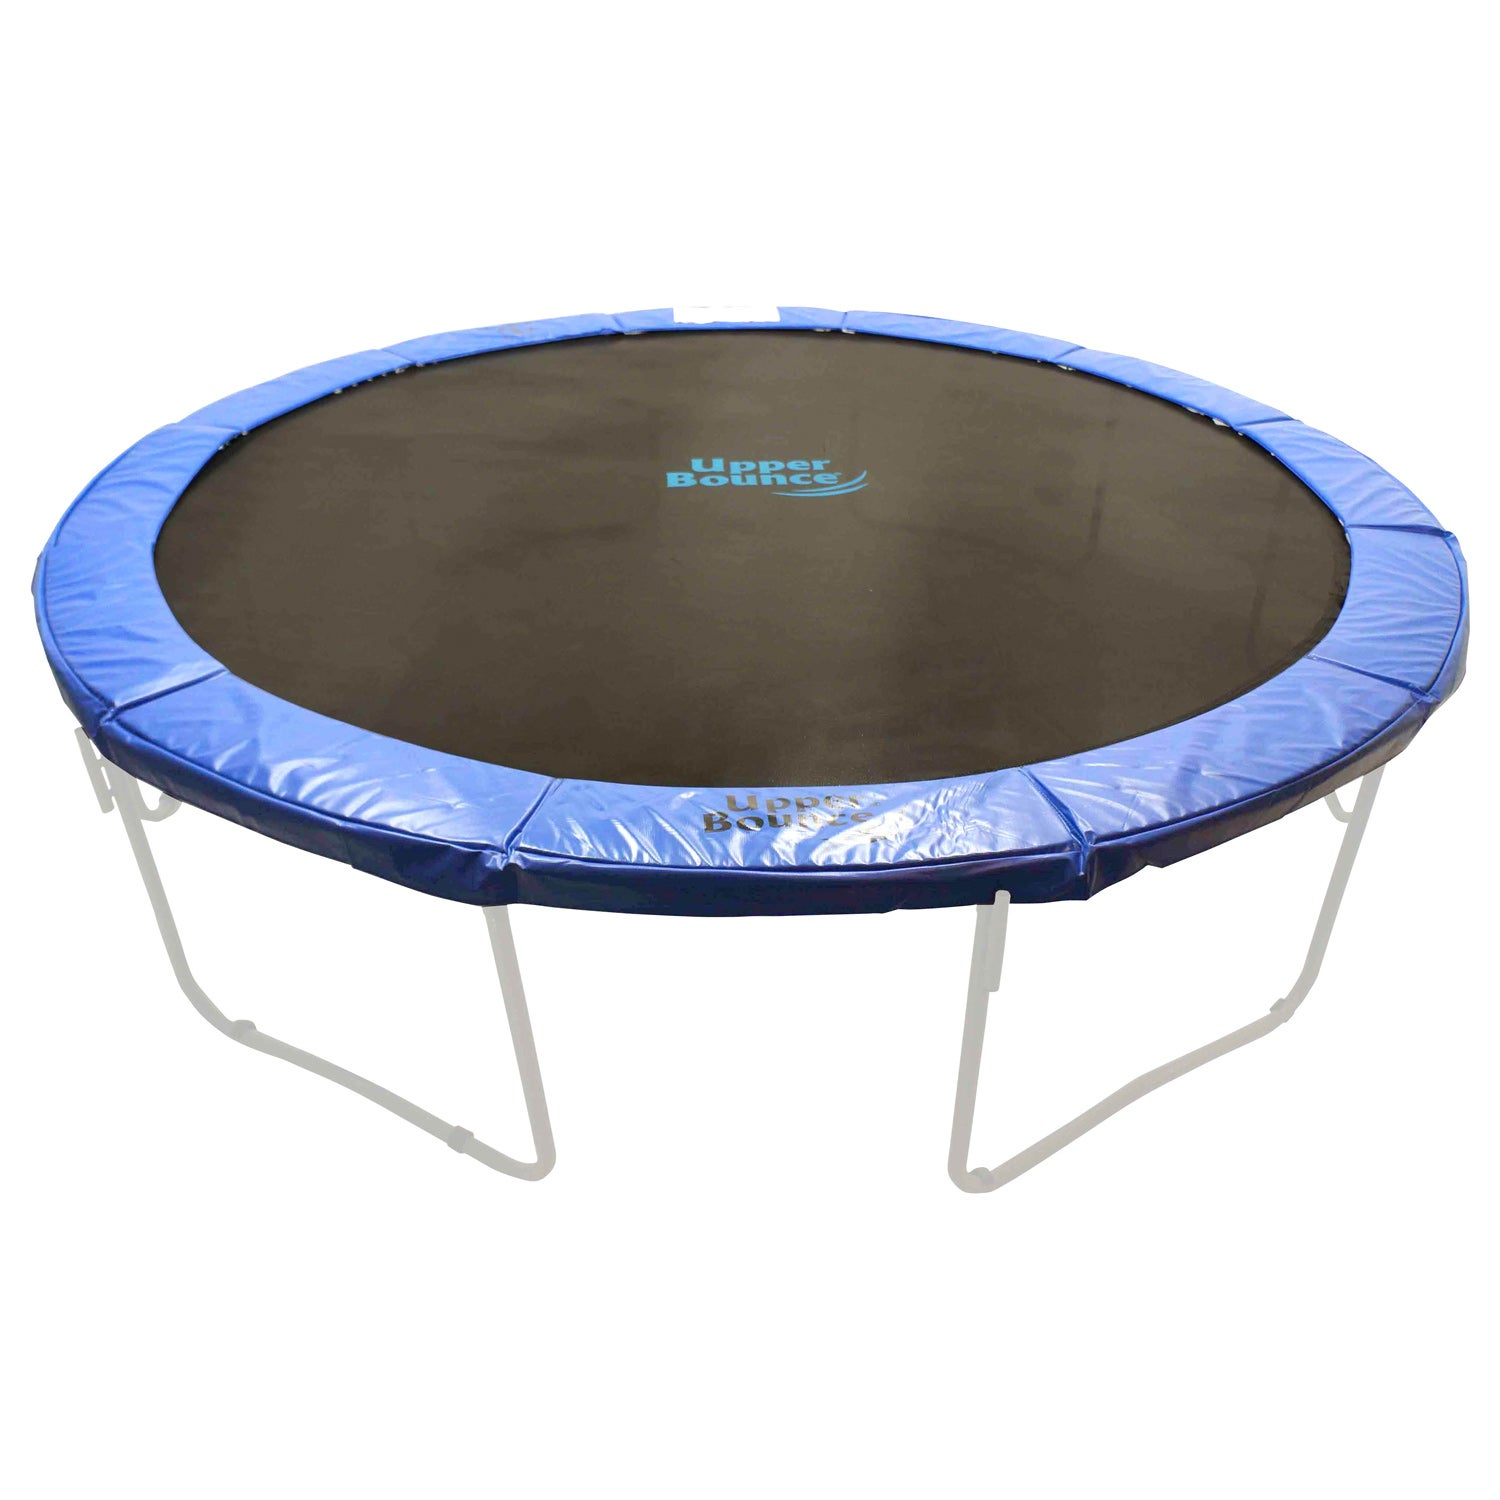 Upper Bounce 15-foot Round Blue Premium Trampoline Safety Pad at Sears.com